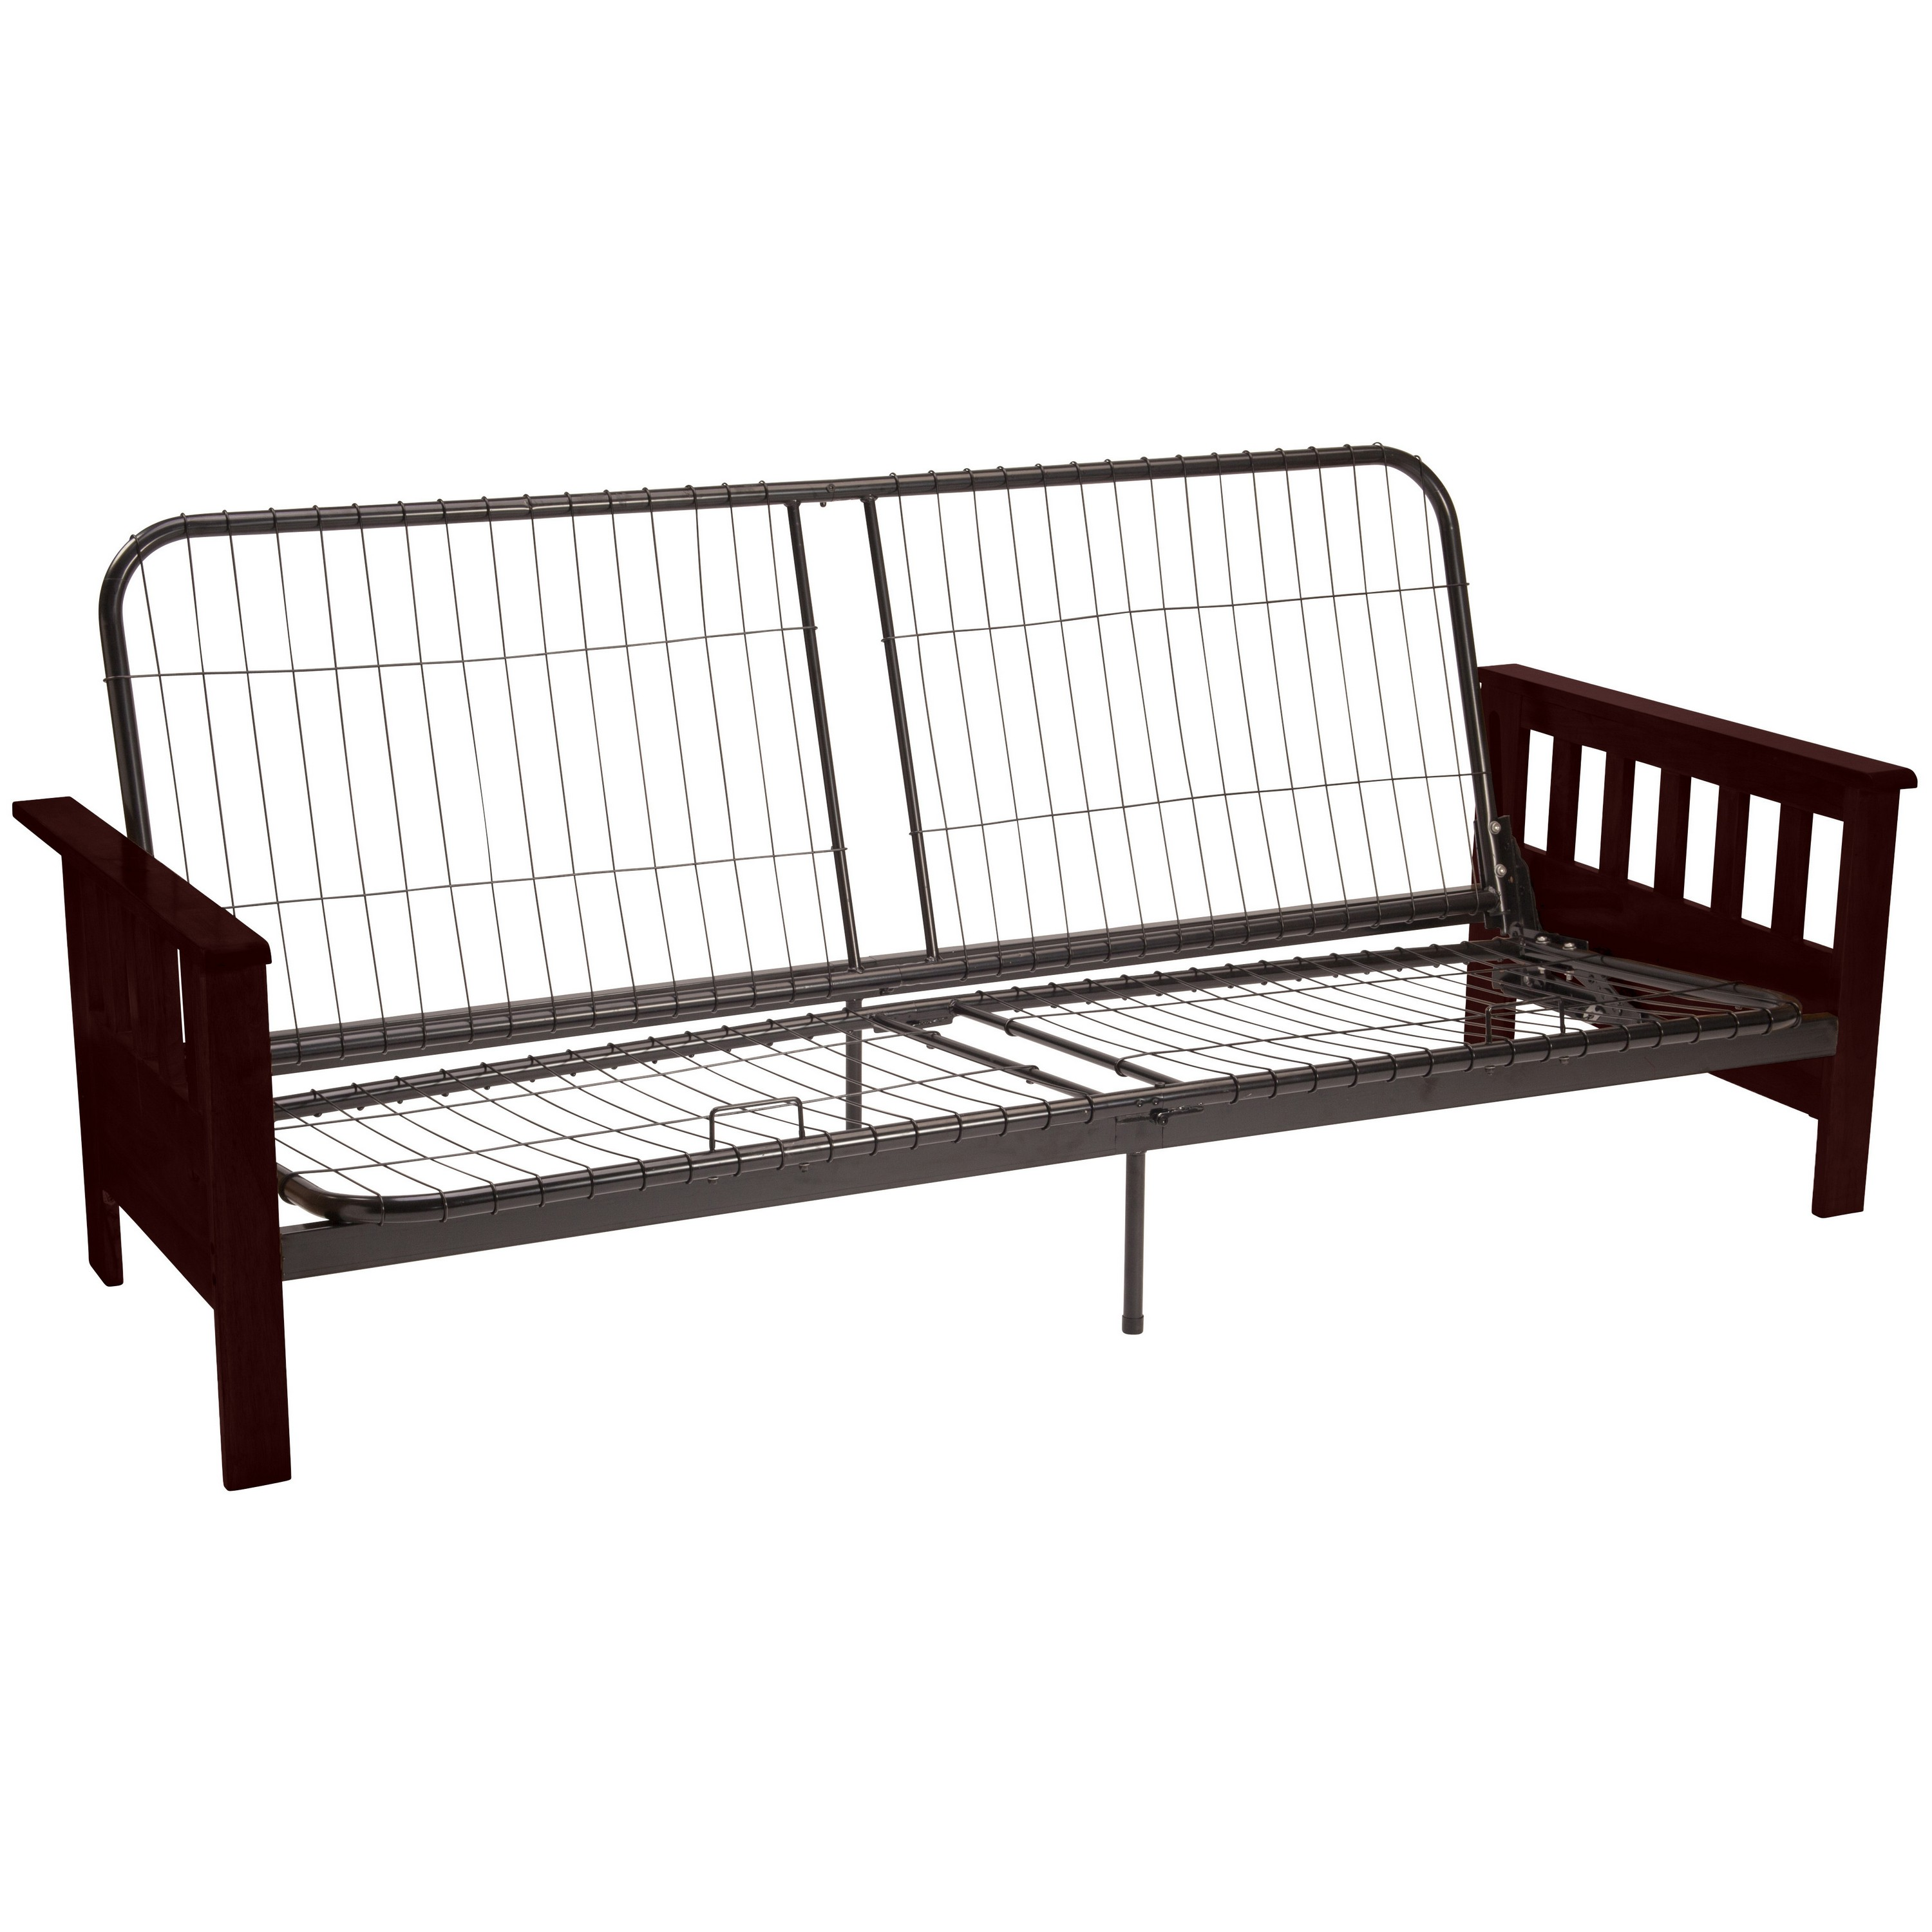 Arts & Crafts Mission Futon Frame, Multiple Sizes and Colors